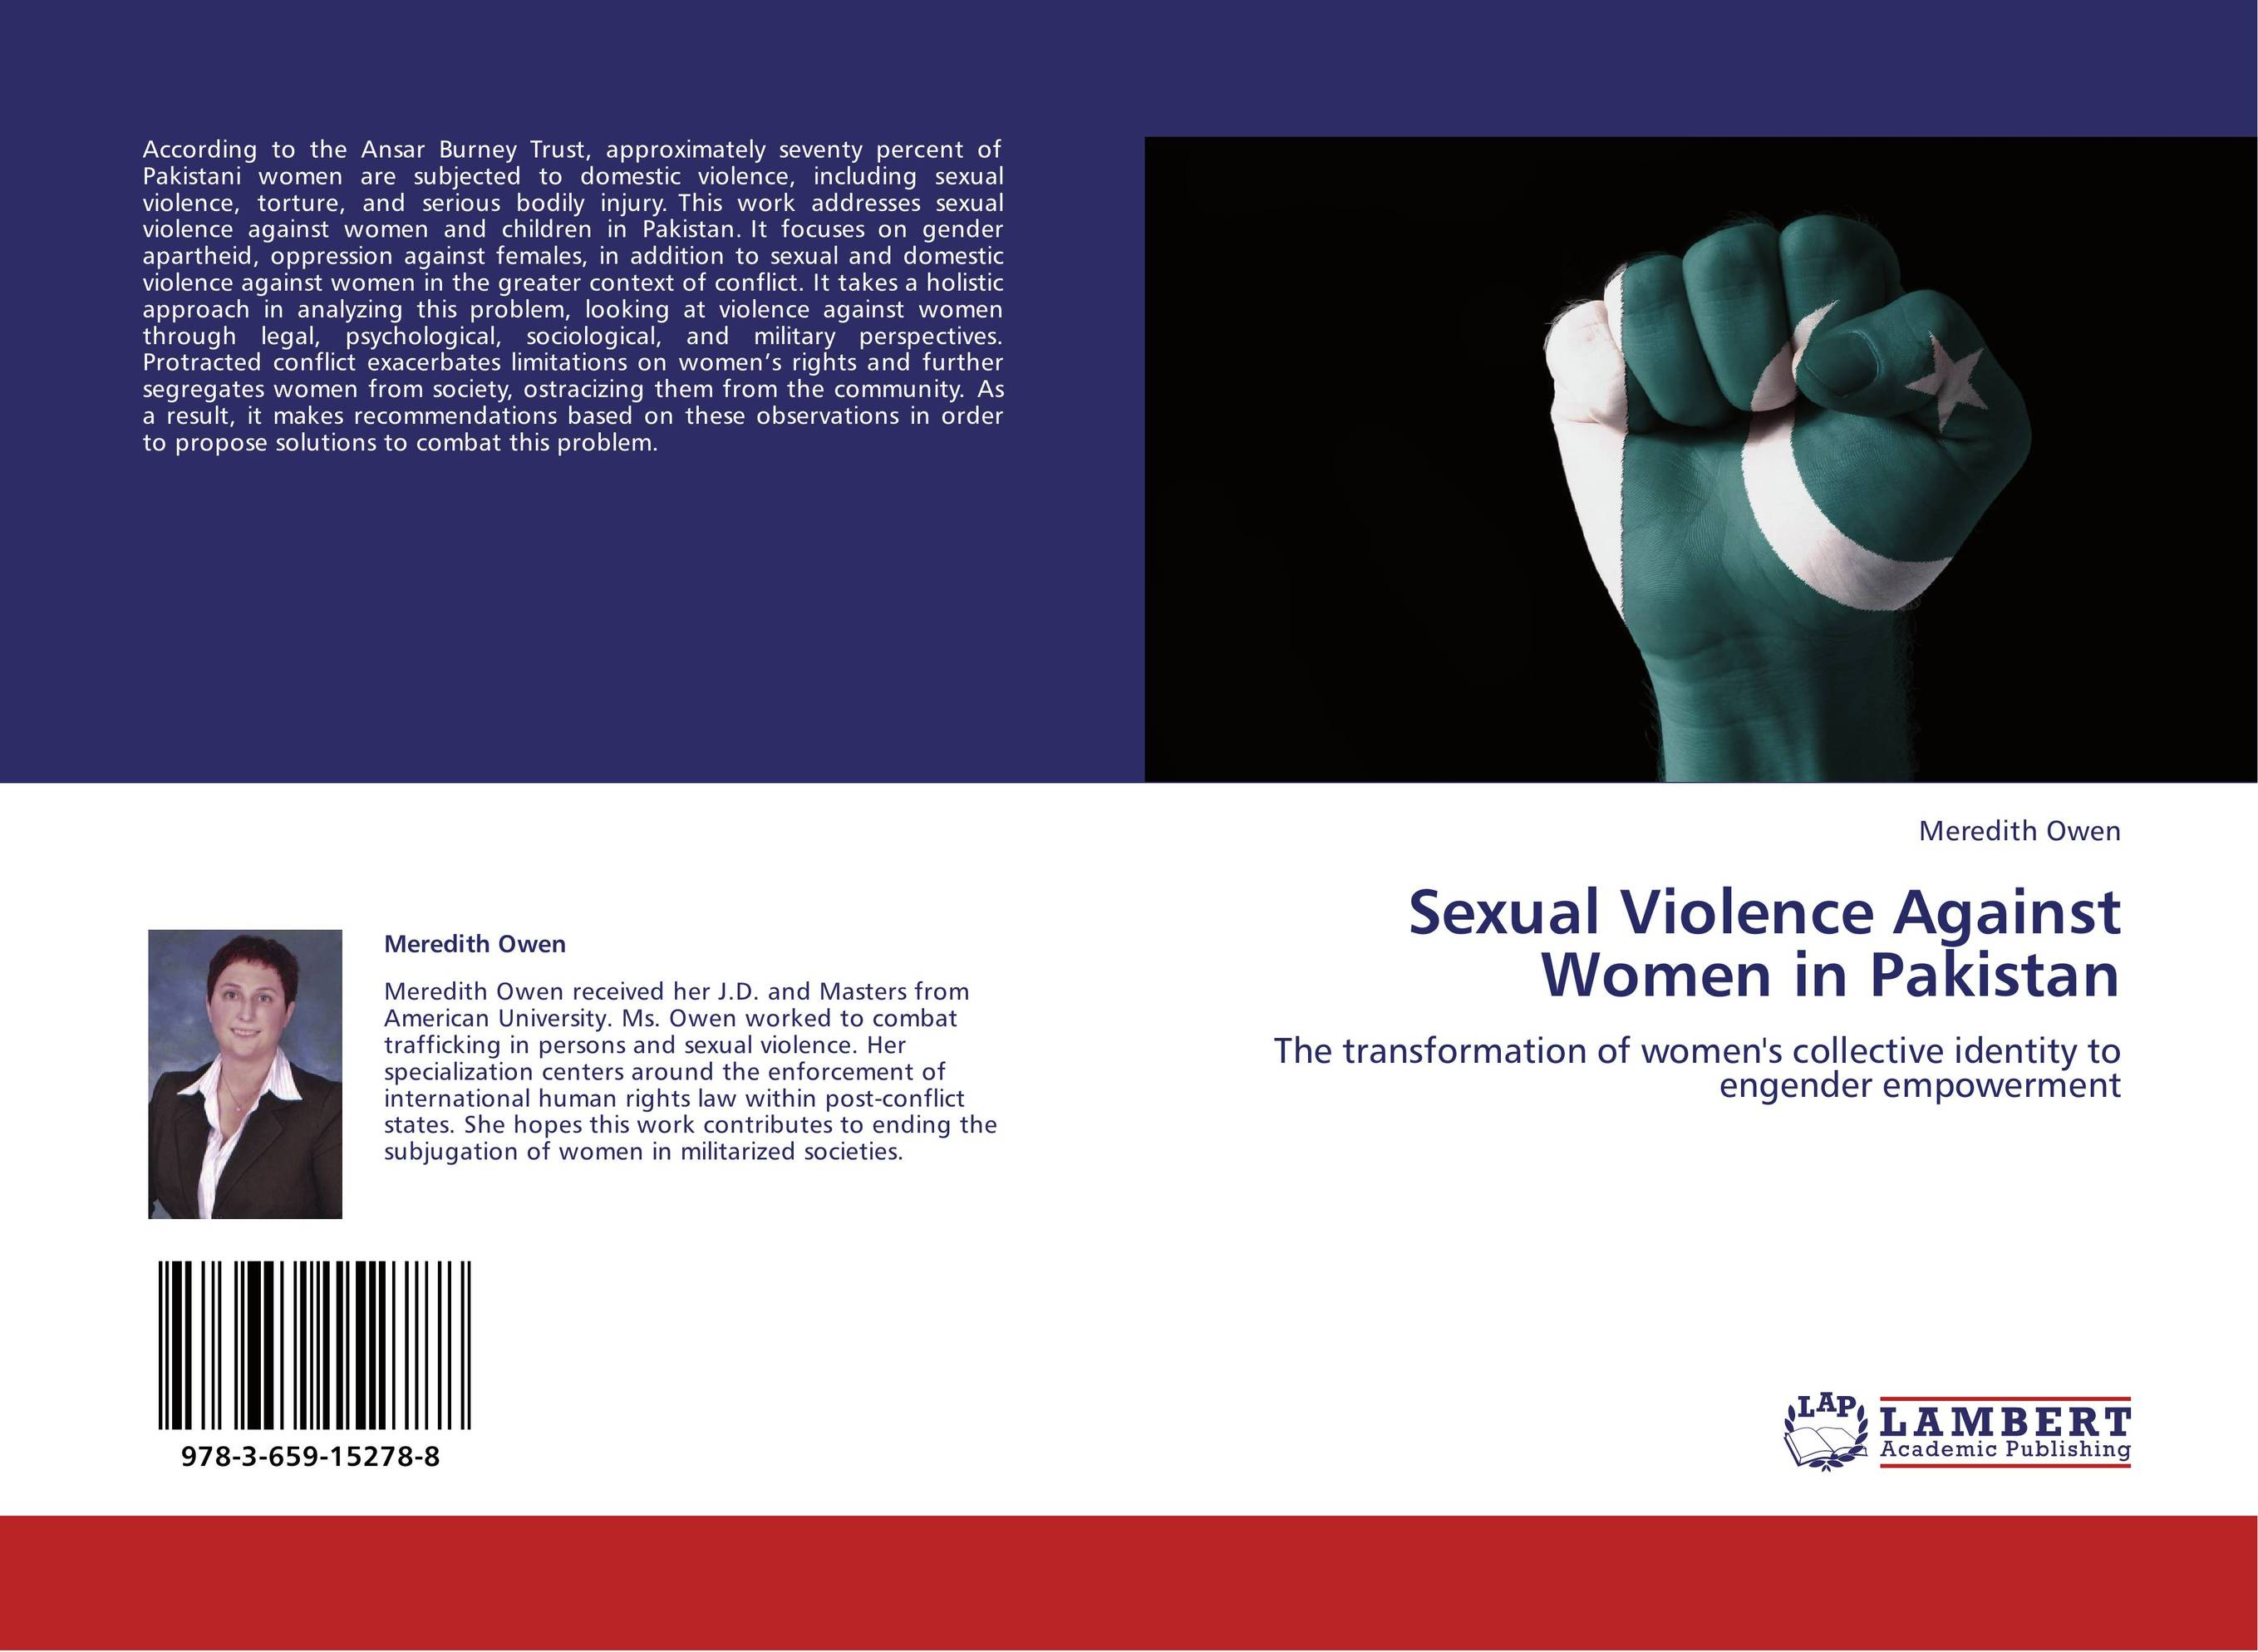 an analysis of sex and sexuality in society Since the beginnings of time, people have been interested in sex - the form it takes, the pleasure it can give, the circumstances in which it occurs, and what it means - both for the individuals concerned and to society more generally.